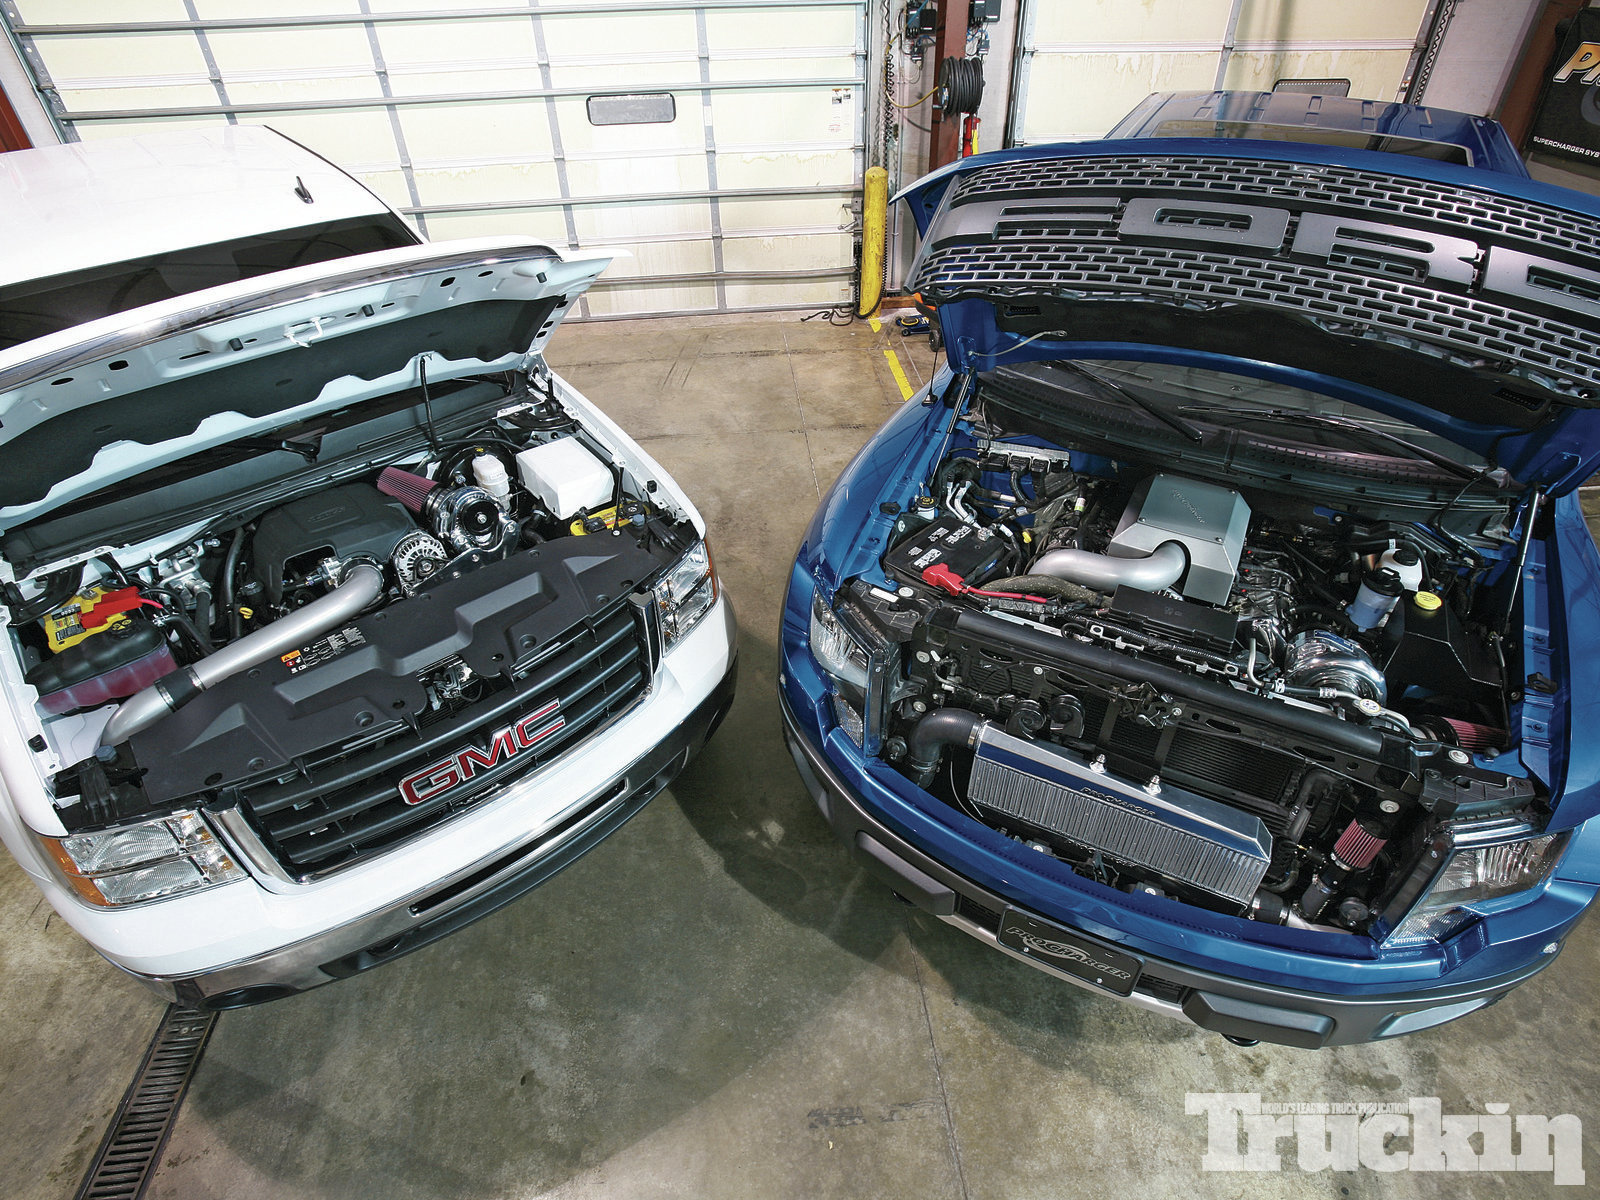 procharger Battle Ford Raptor Vs Gmc Sierra engine Bays